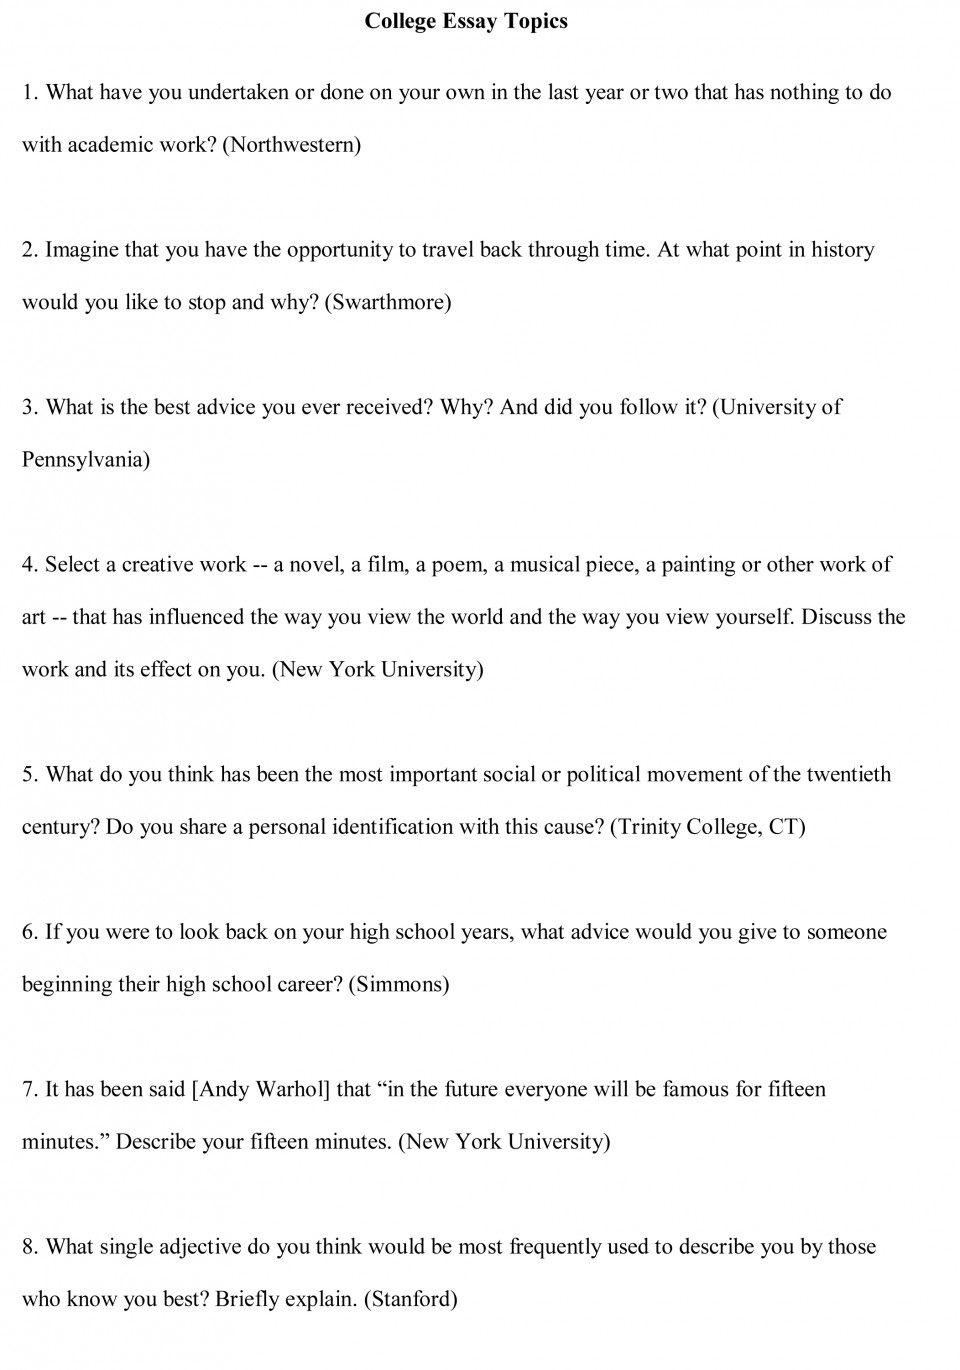 003 College Essay Topics Free Sample1 Prompts Impressive Uc Texas And Examples 960